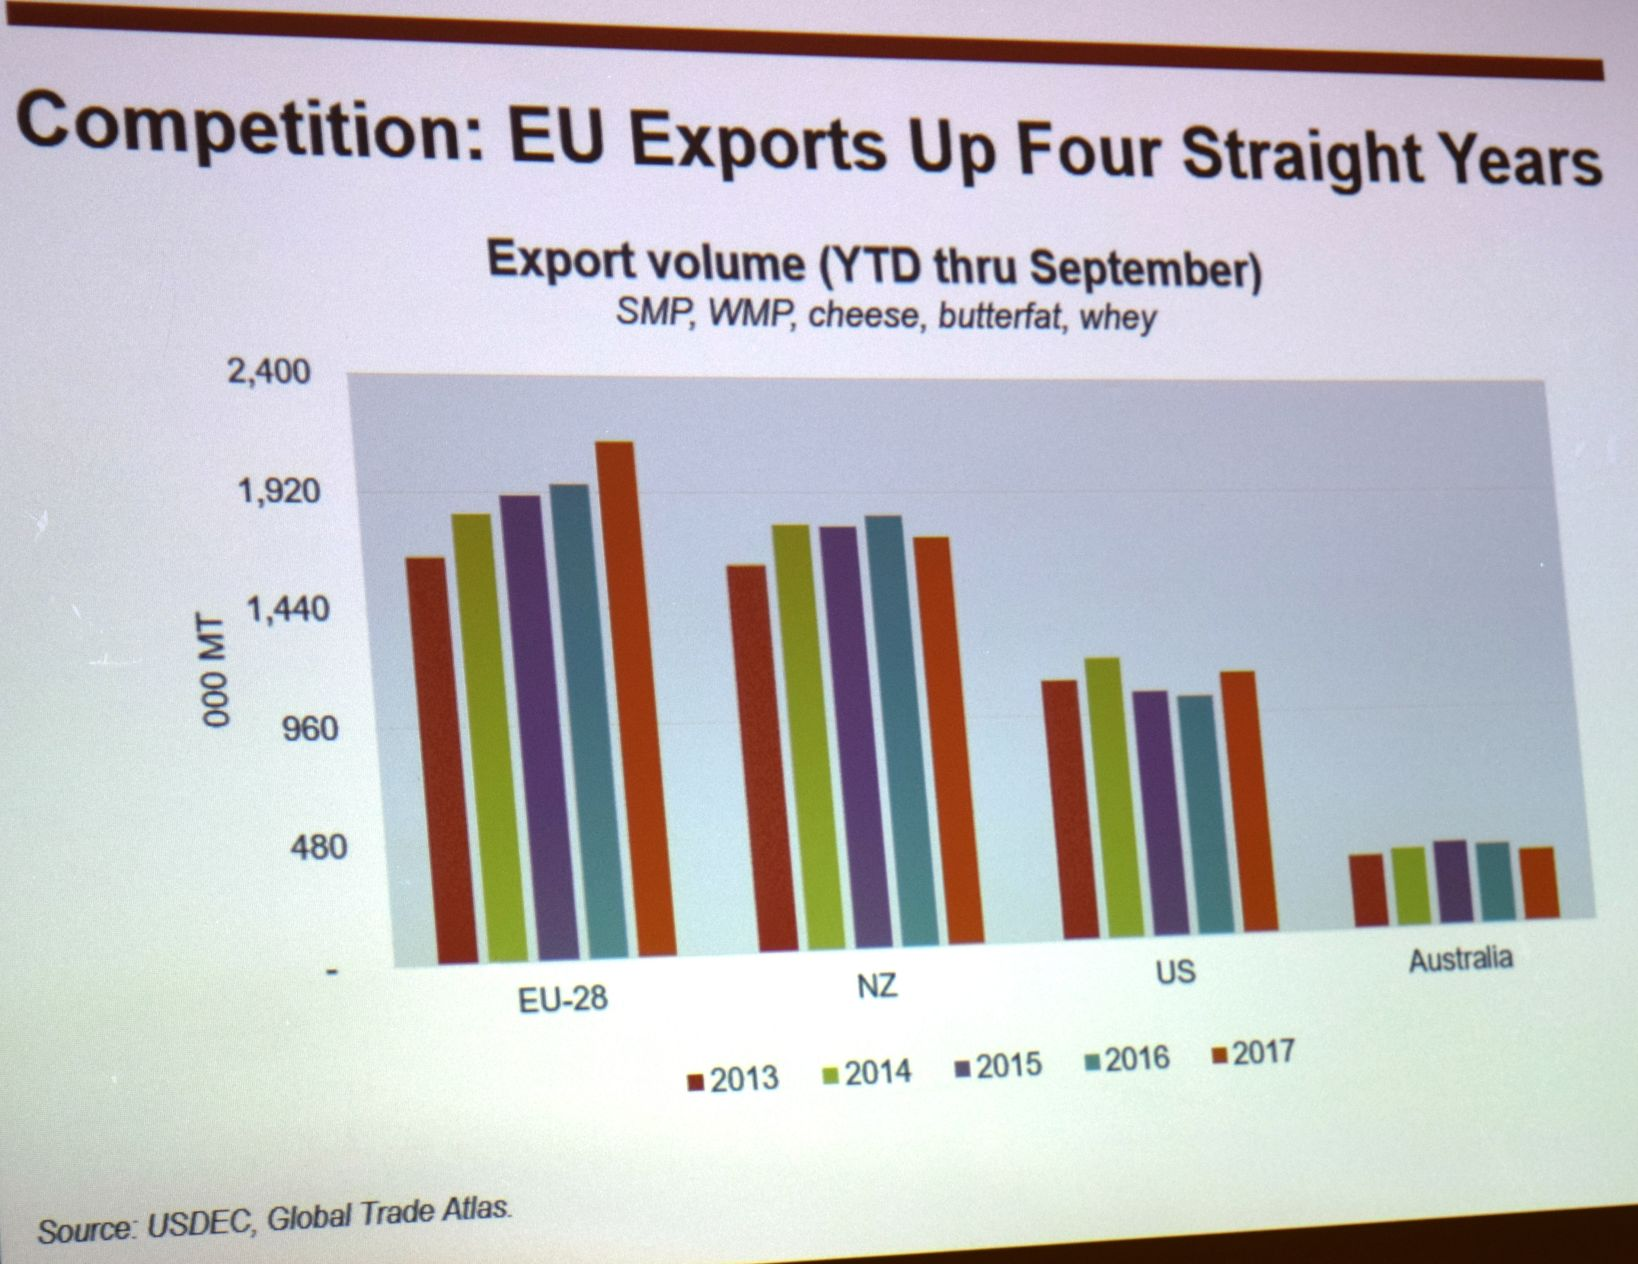 Competition EU Exports up Four Straight Years